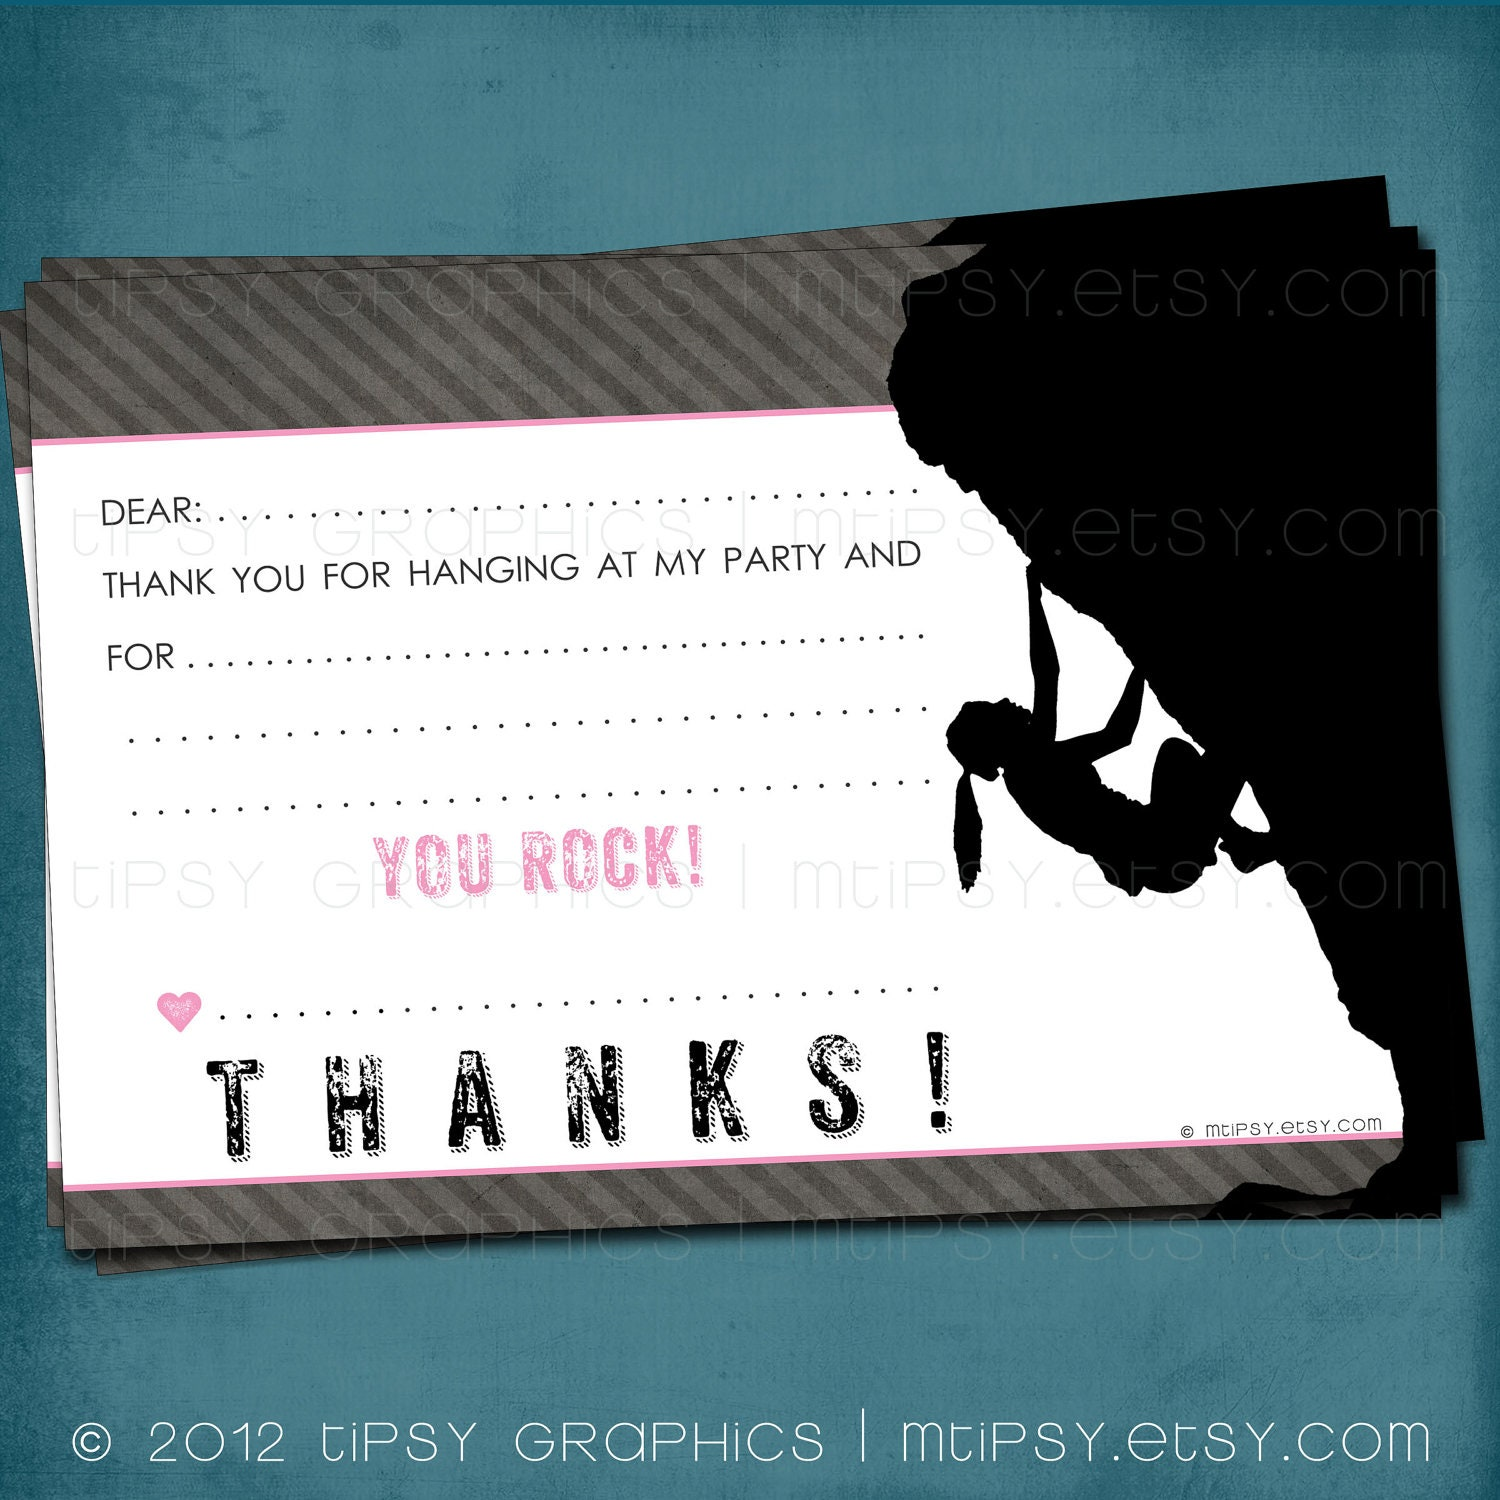 You rock rock climbing party thank you note for big kids by zoom monicamarmolfo Images